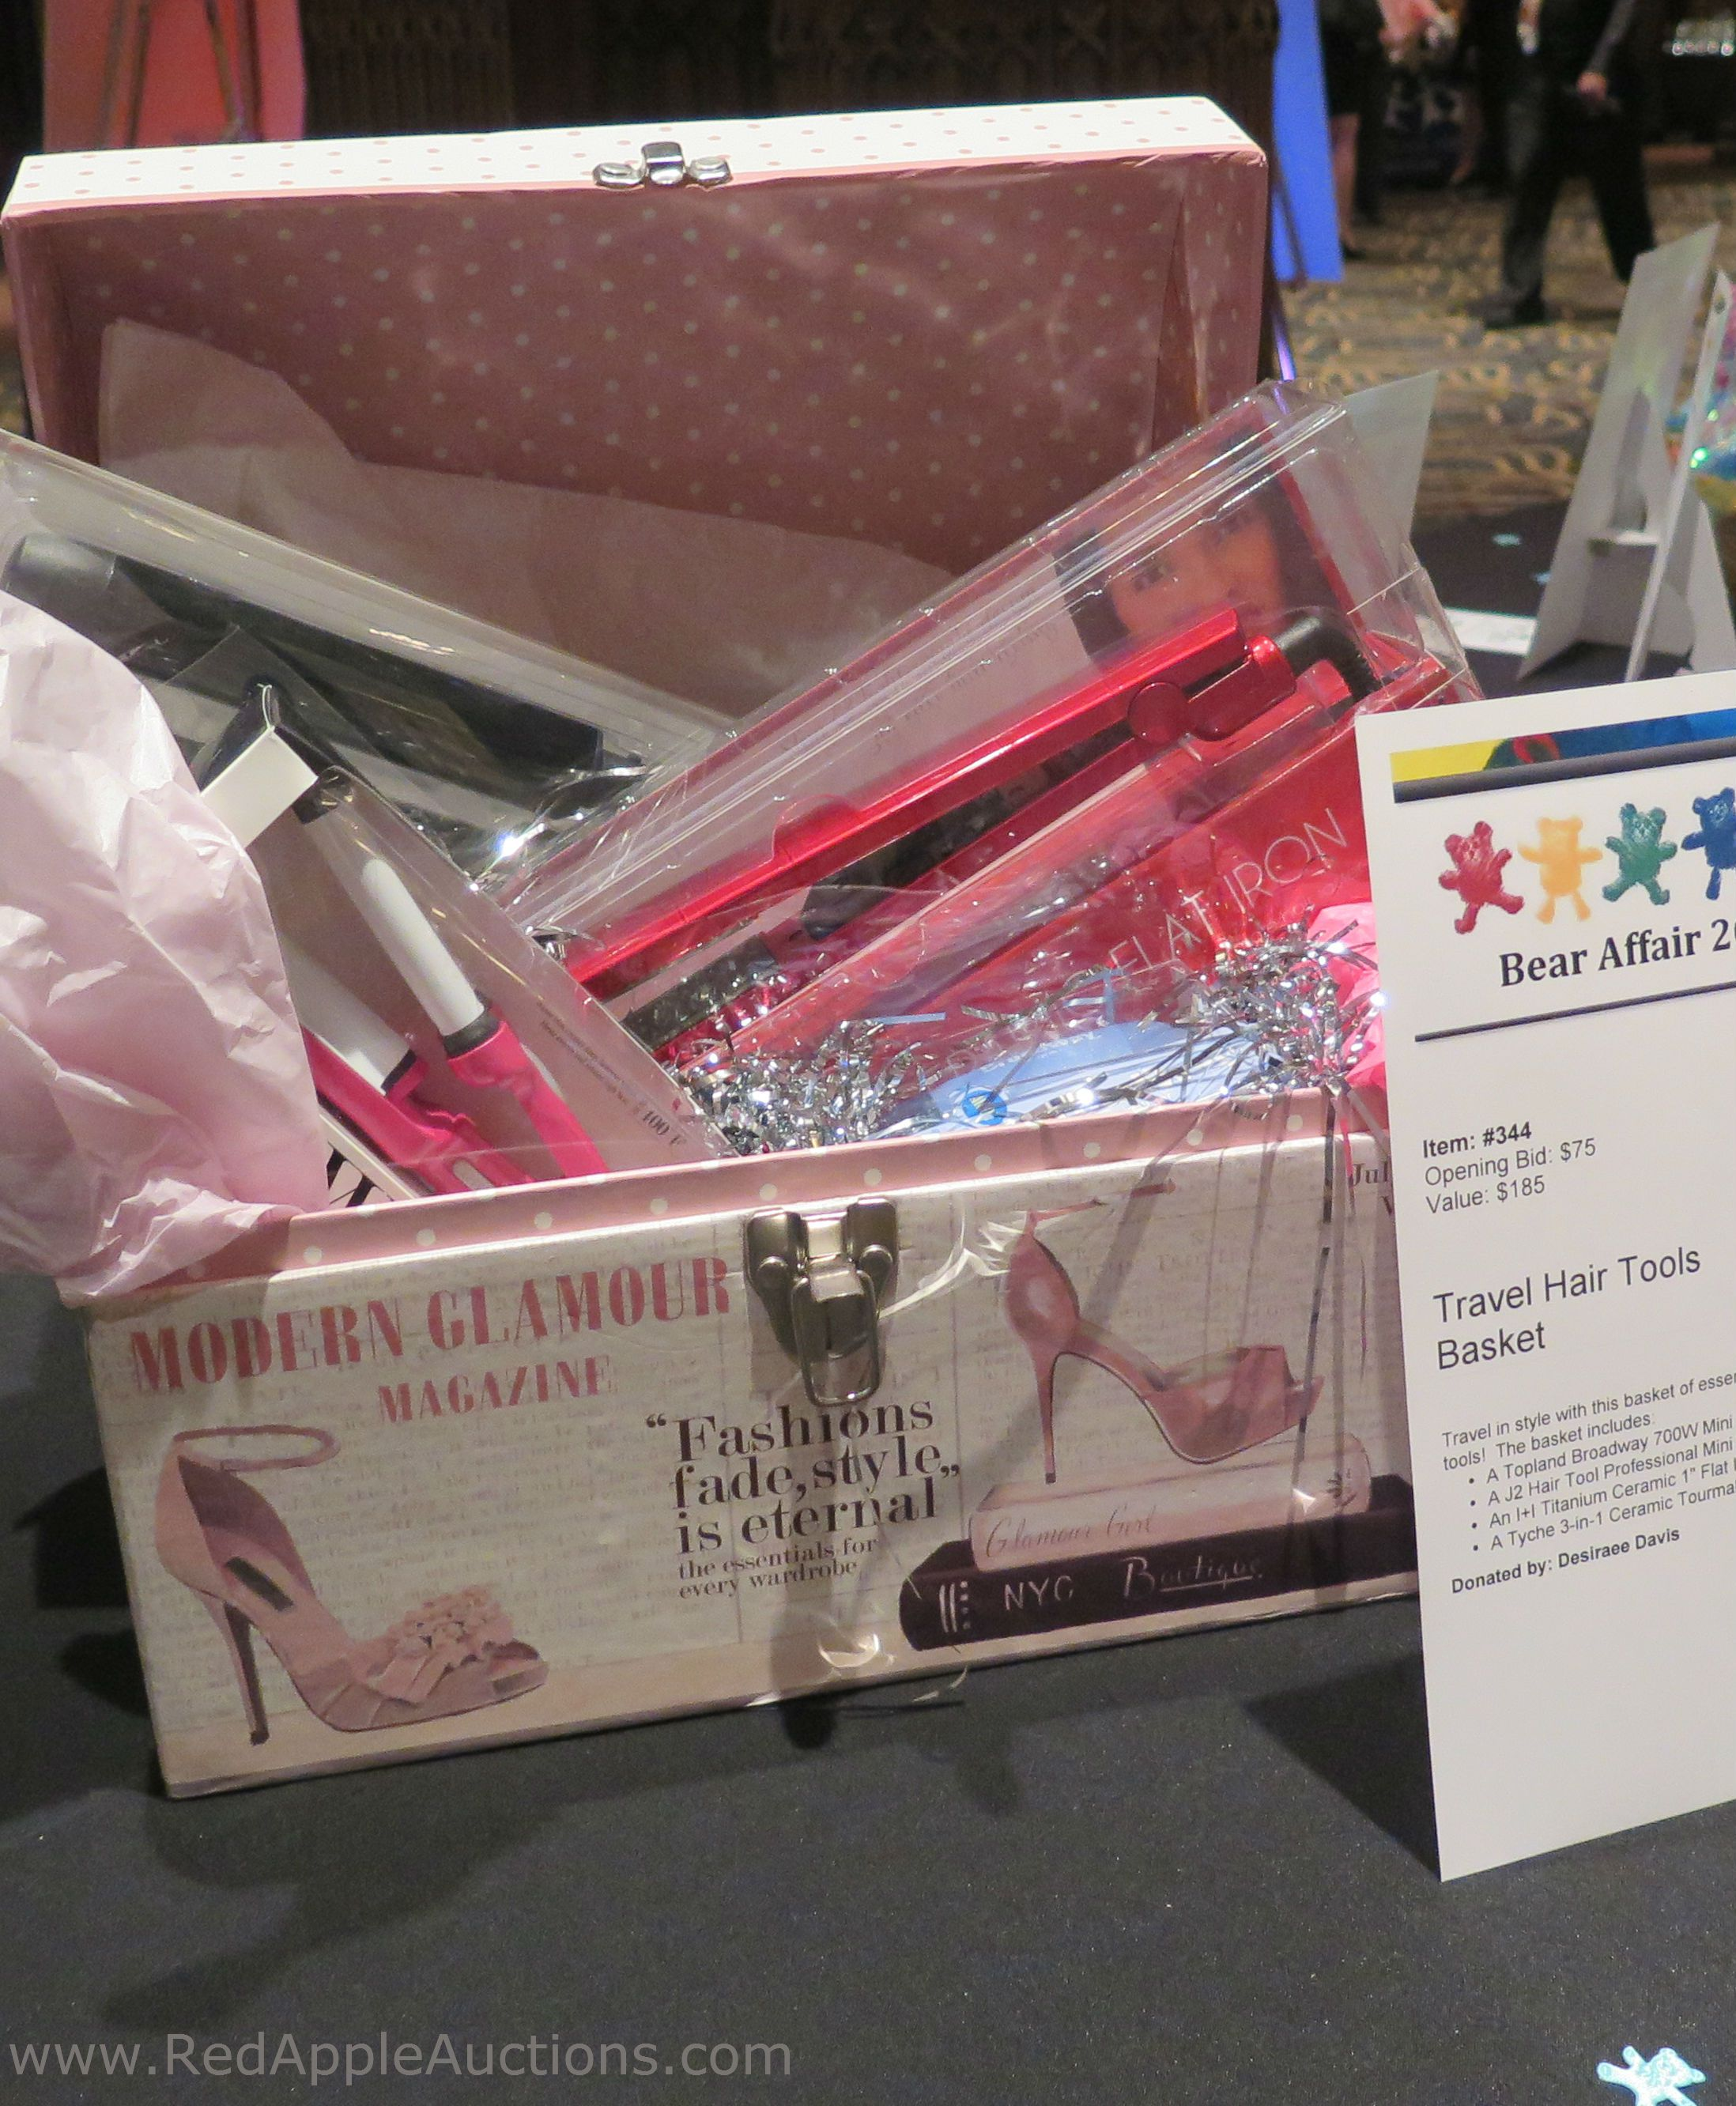 Travel hair tools basket in the silent auction. Cute pink